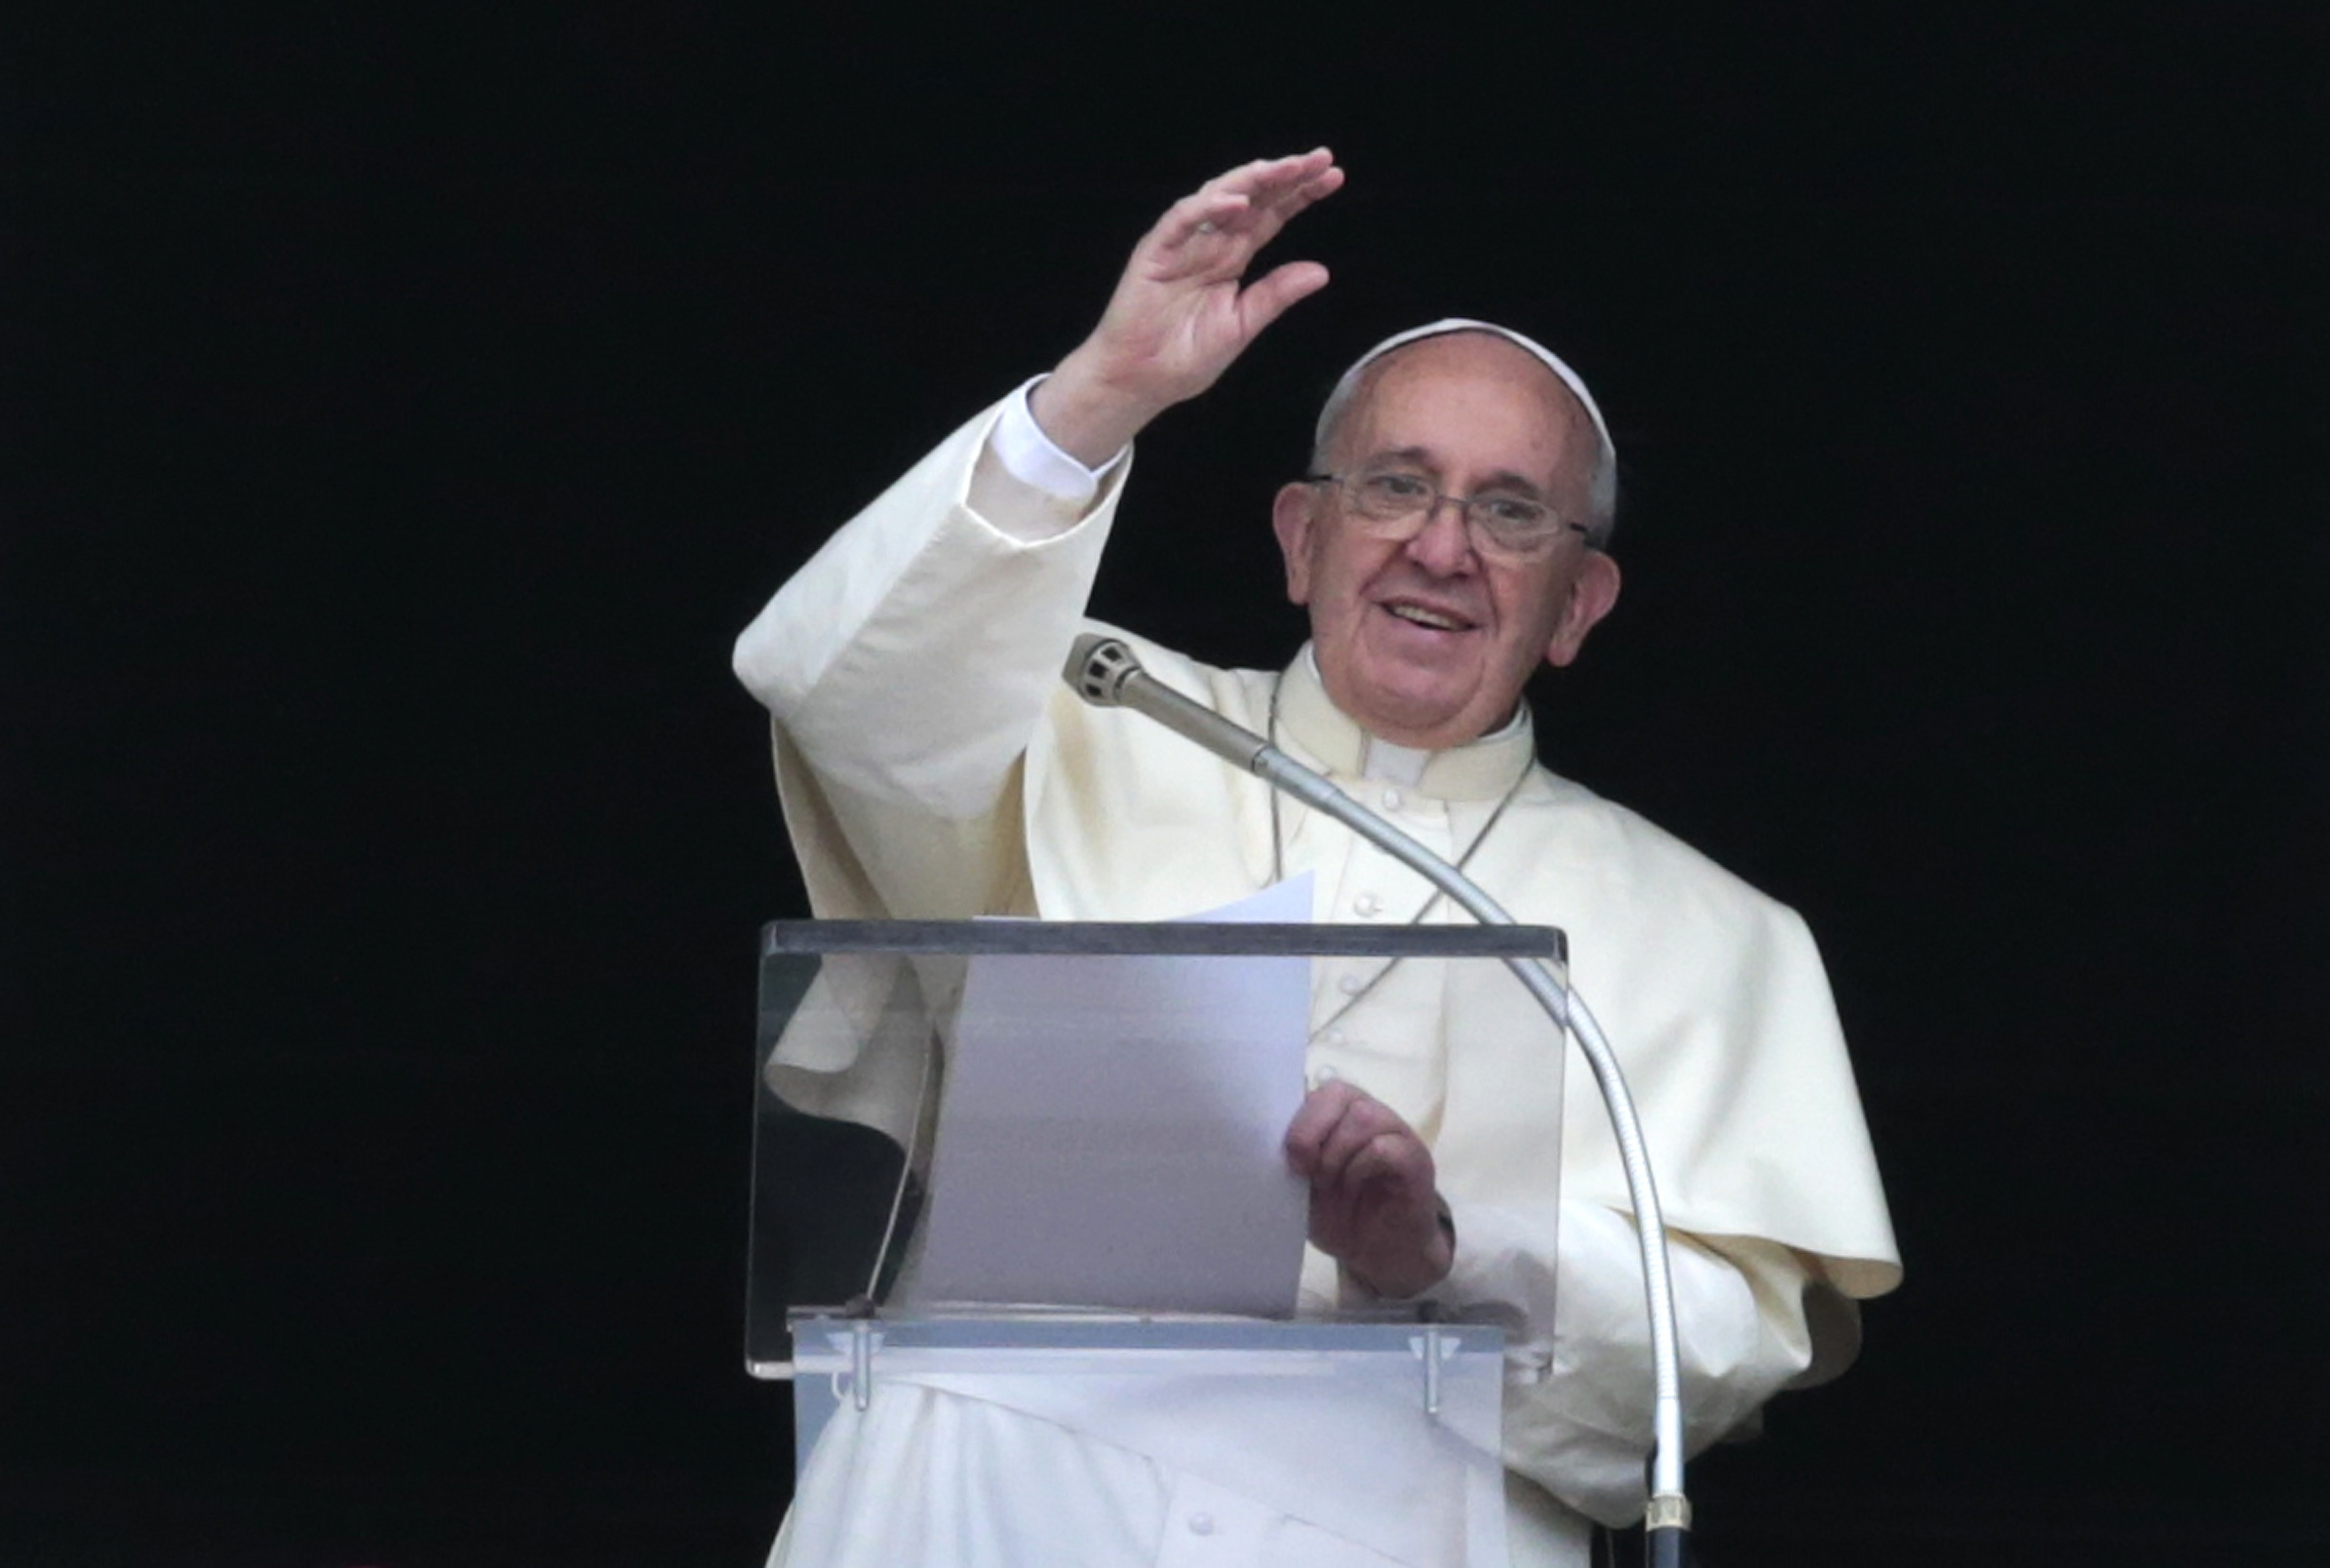 Pope Francis on Thursday denounced discrimination against Christians